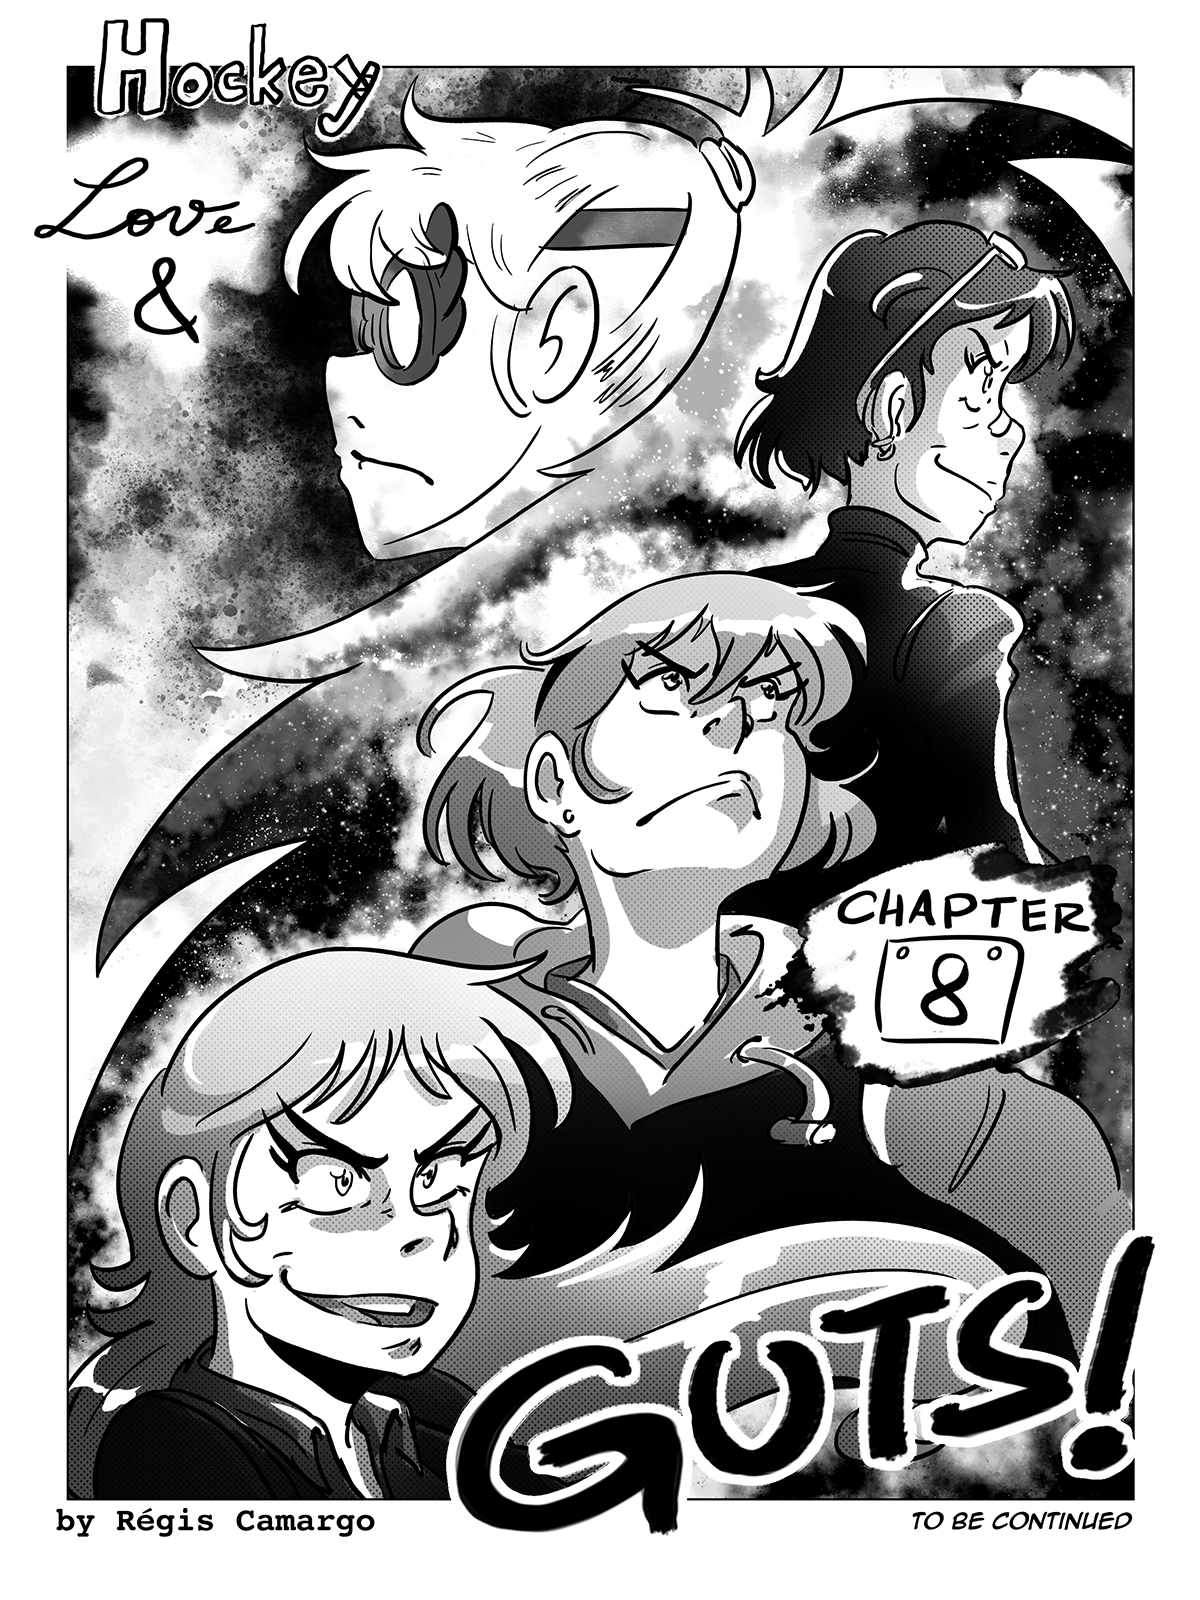 Hockey, Love, & GUTS! – Chapter 8 – Page 219